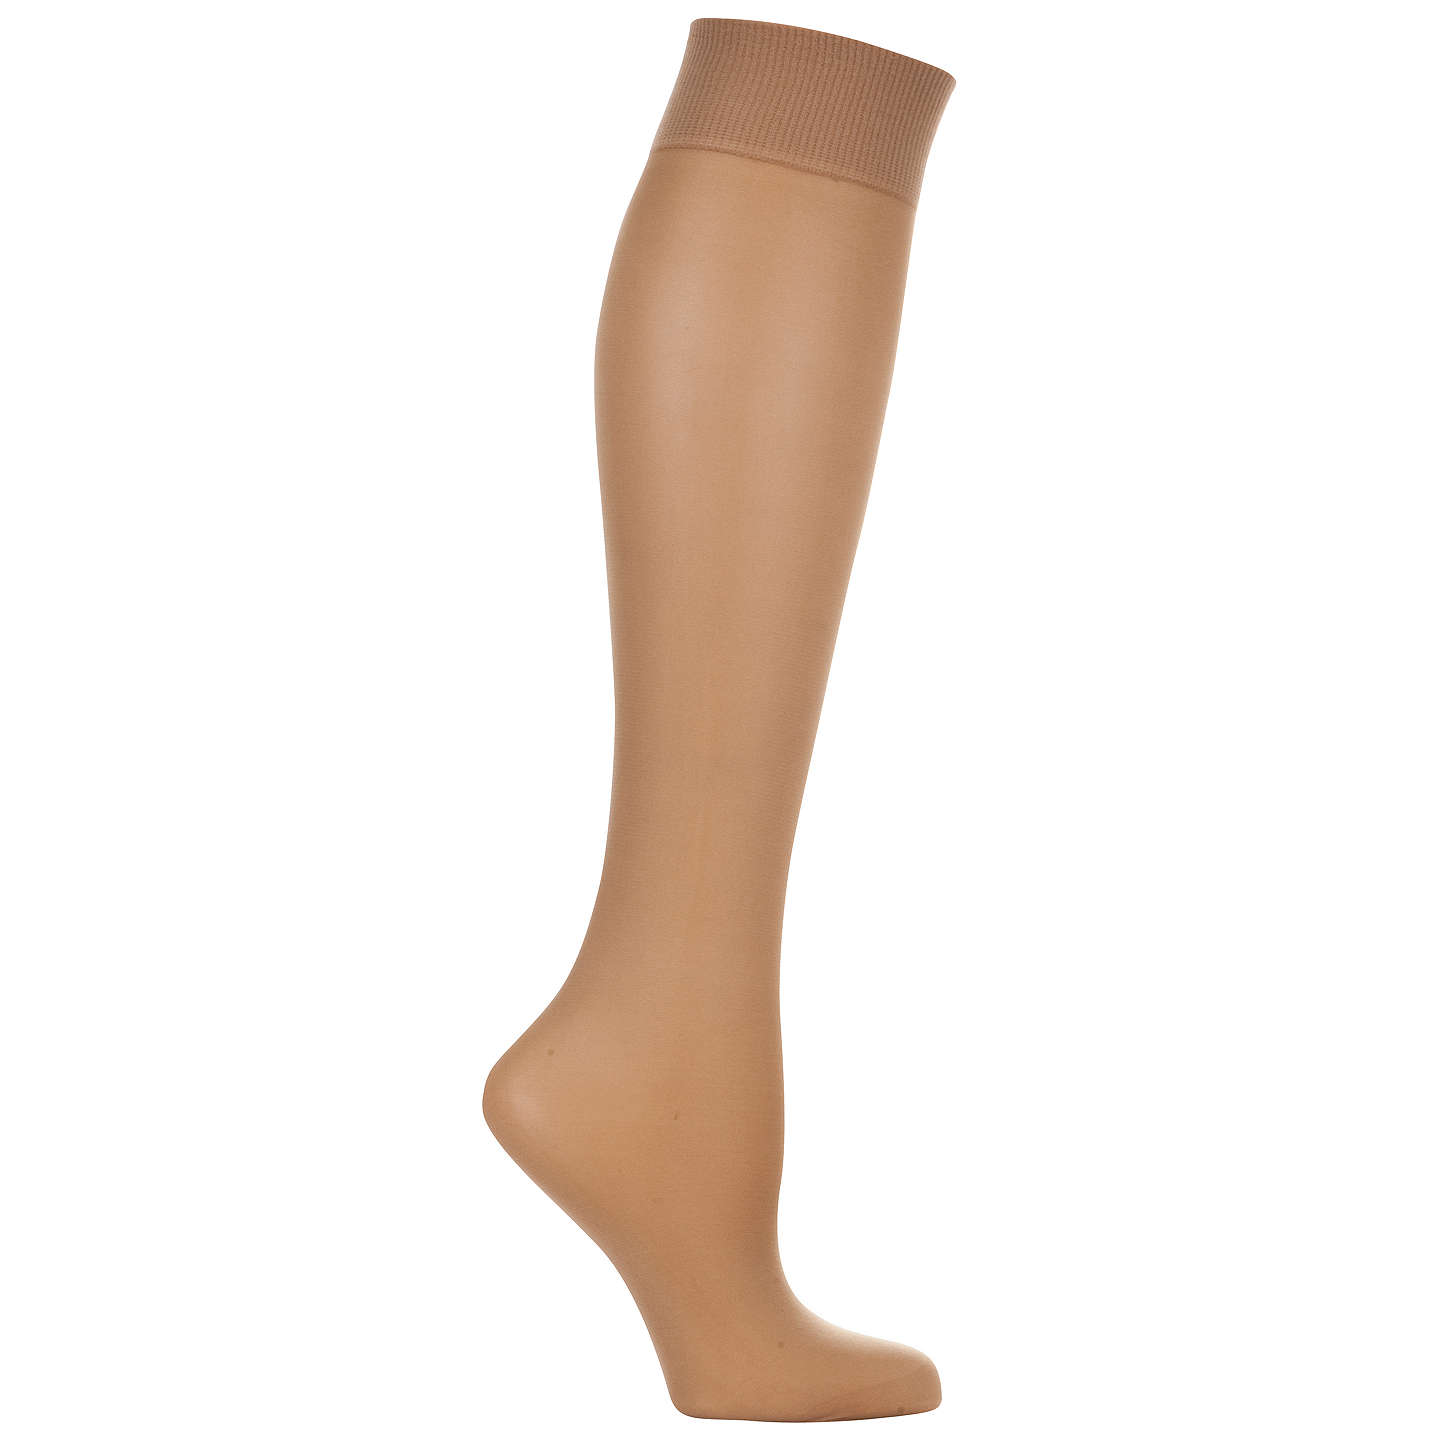 BuyJohn Lewis 7 Denier Medium Support Knee High Socks, Pack of 2, Nude Online at johnlewis.com